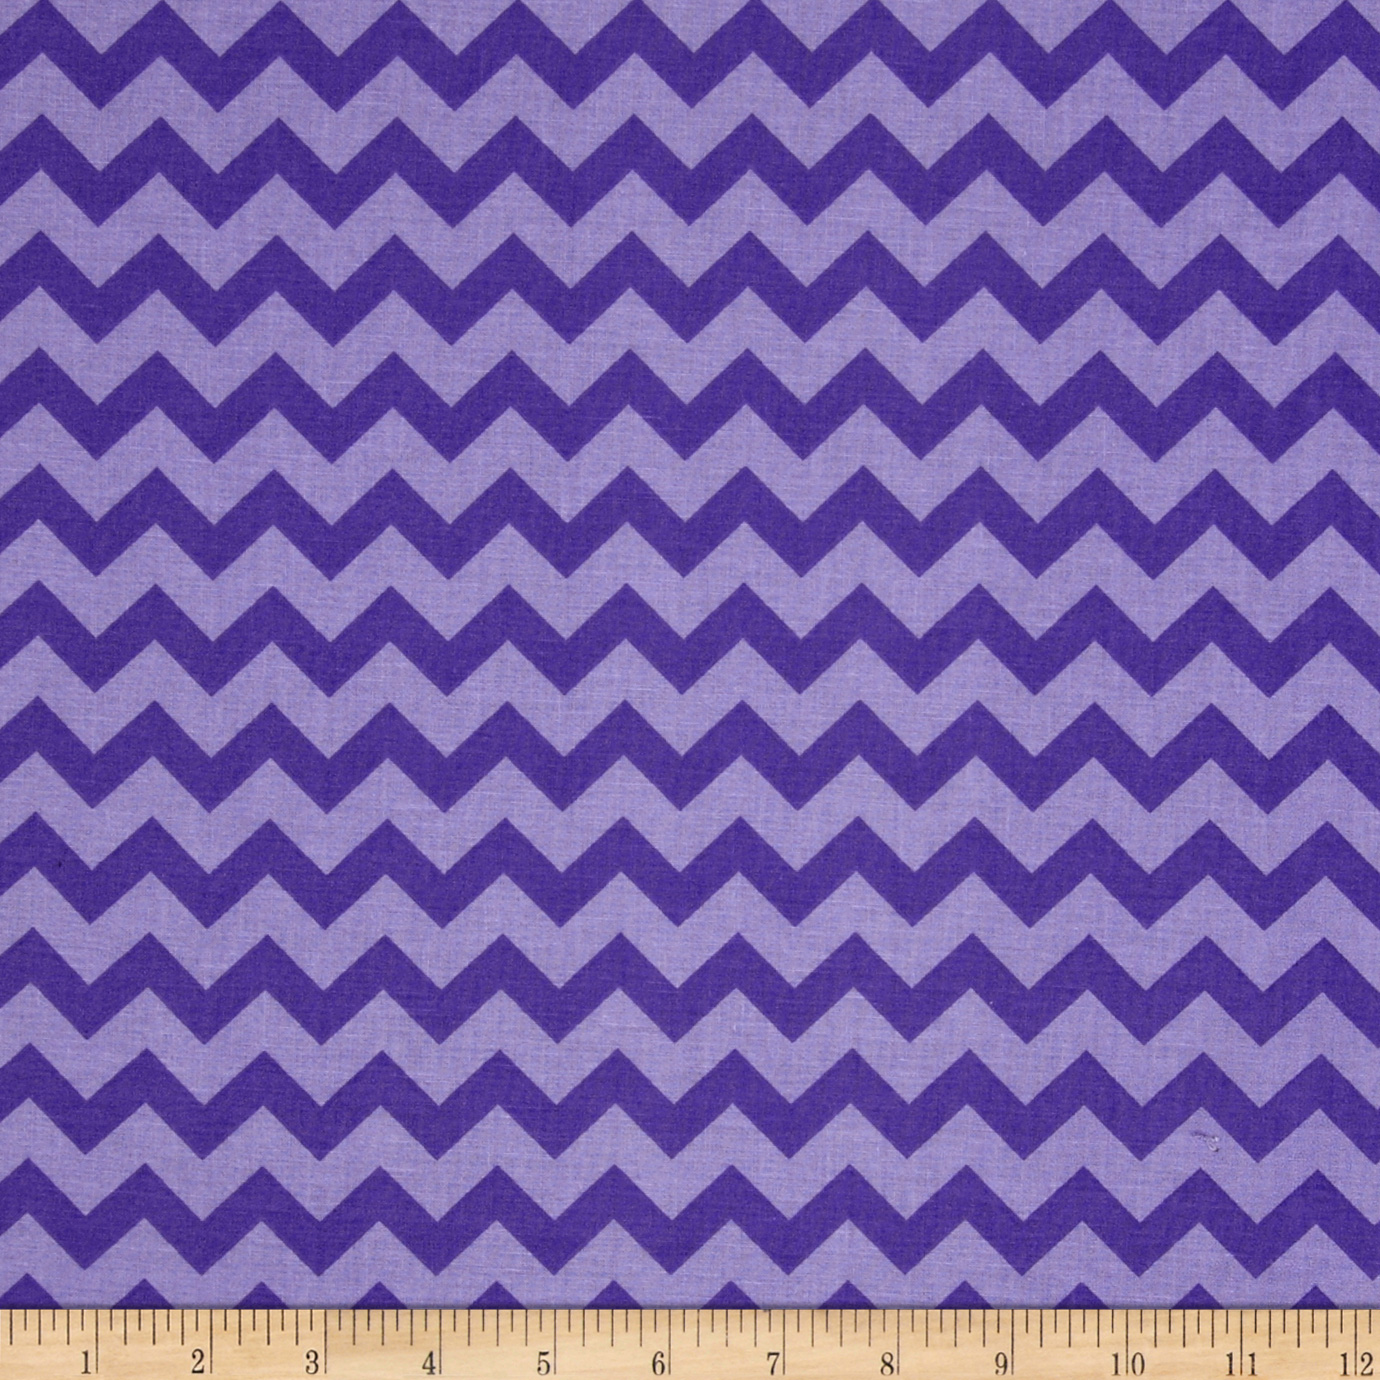 Chevron Tonal Purple/Lavender Fabric